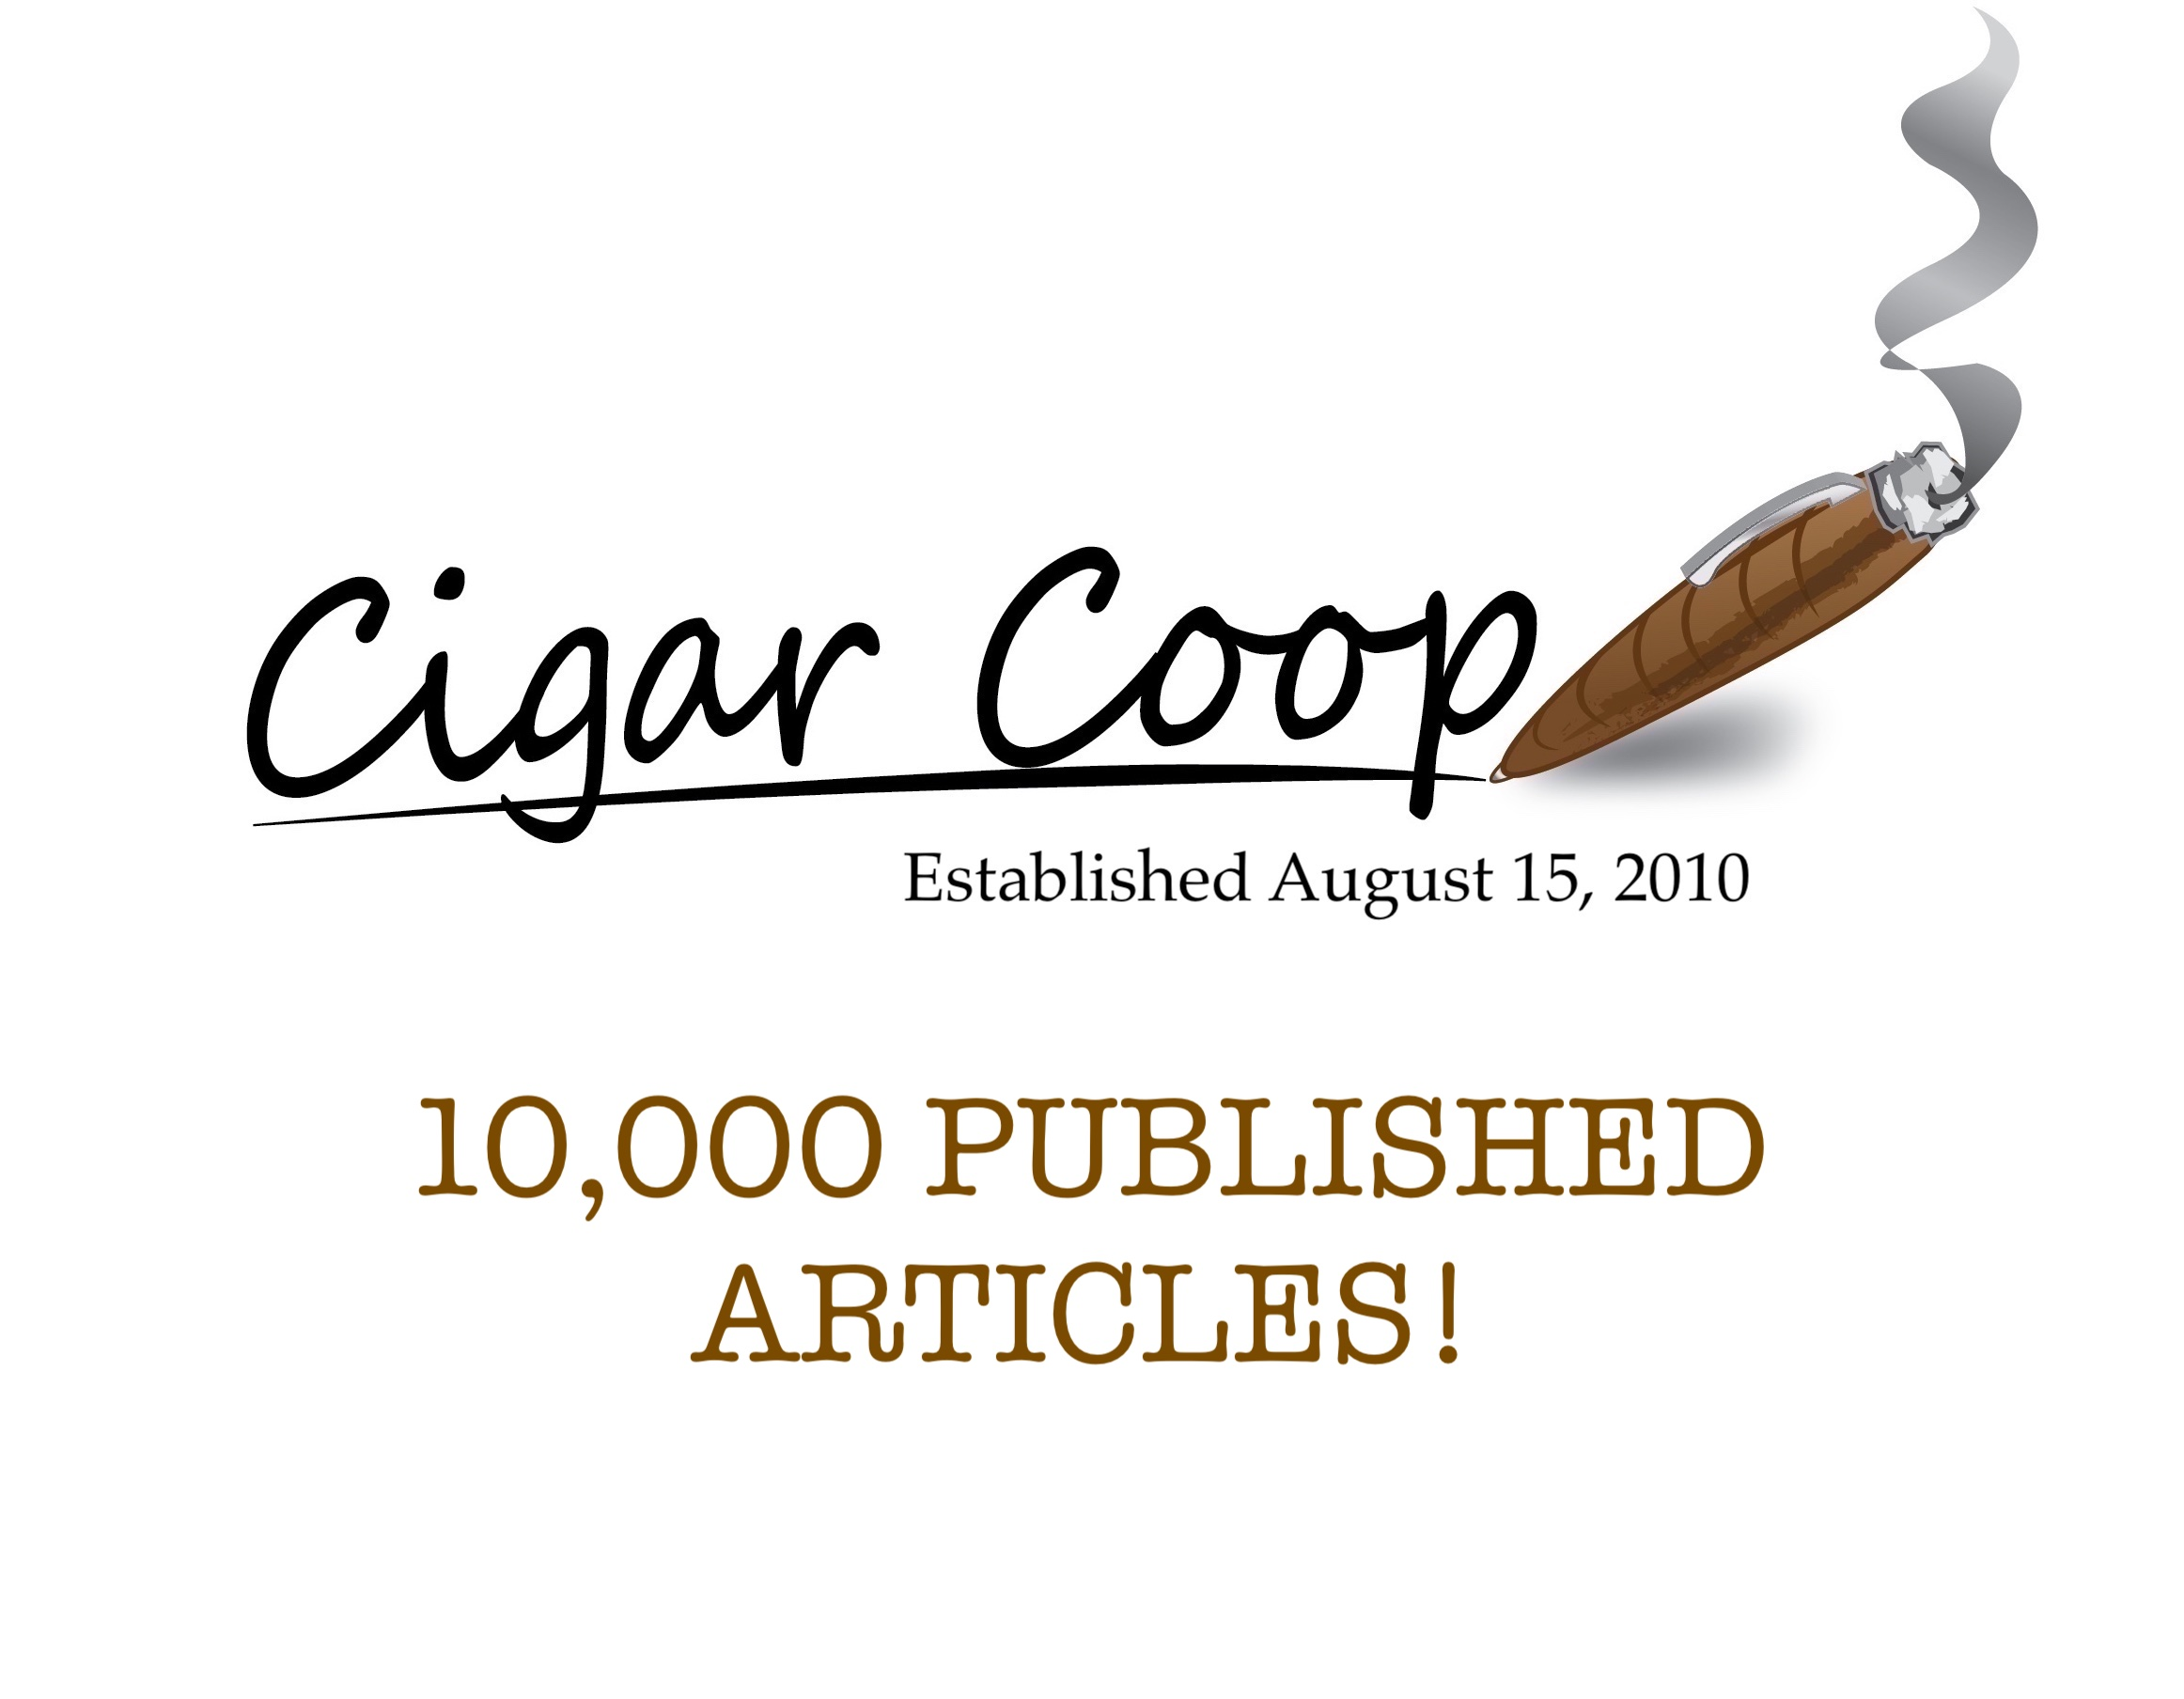 The Blog: Our 10,000th Published Article